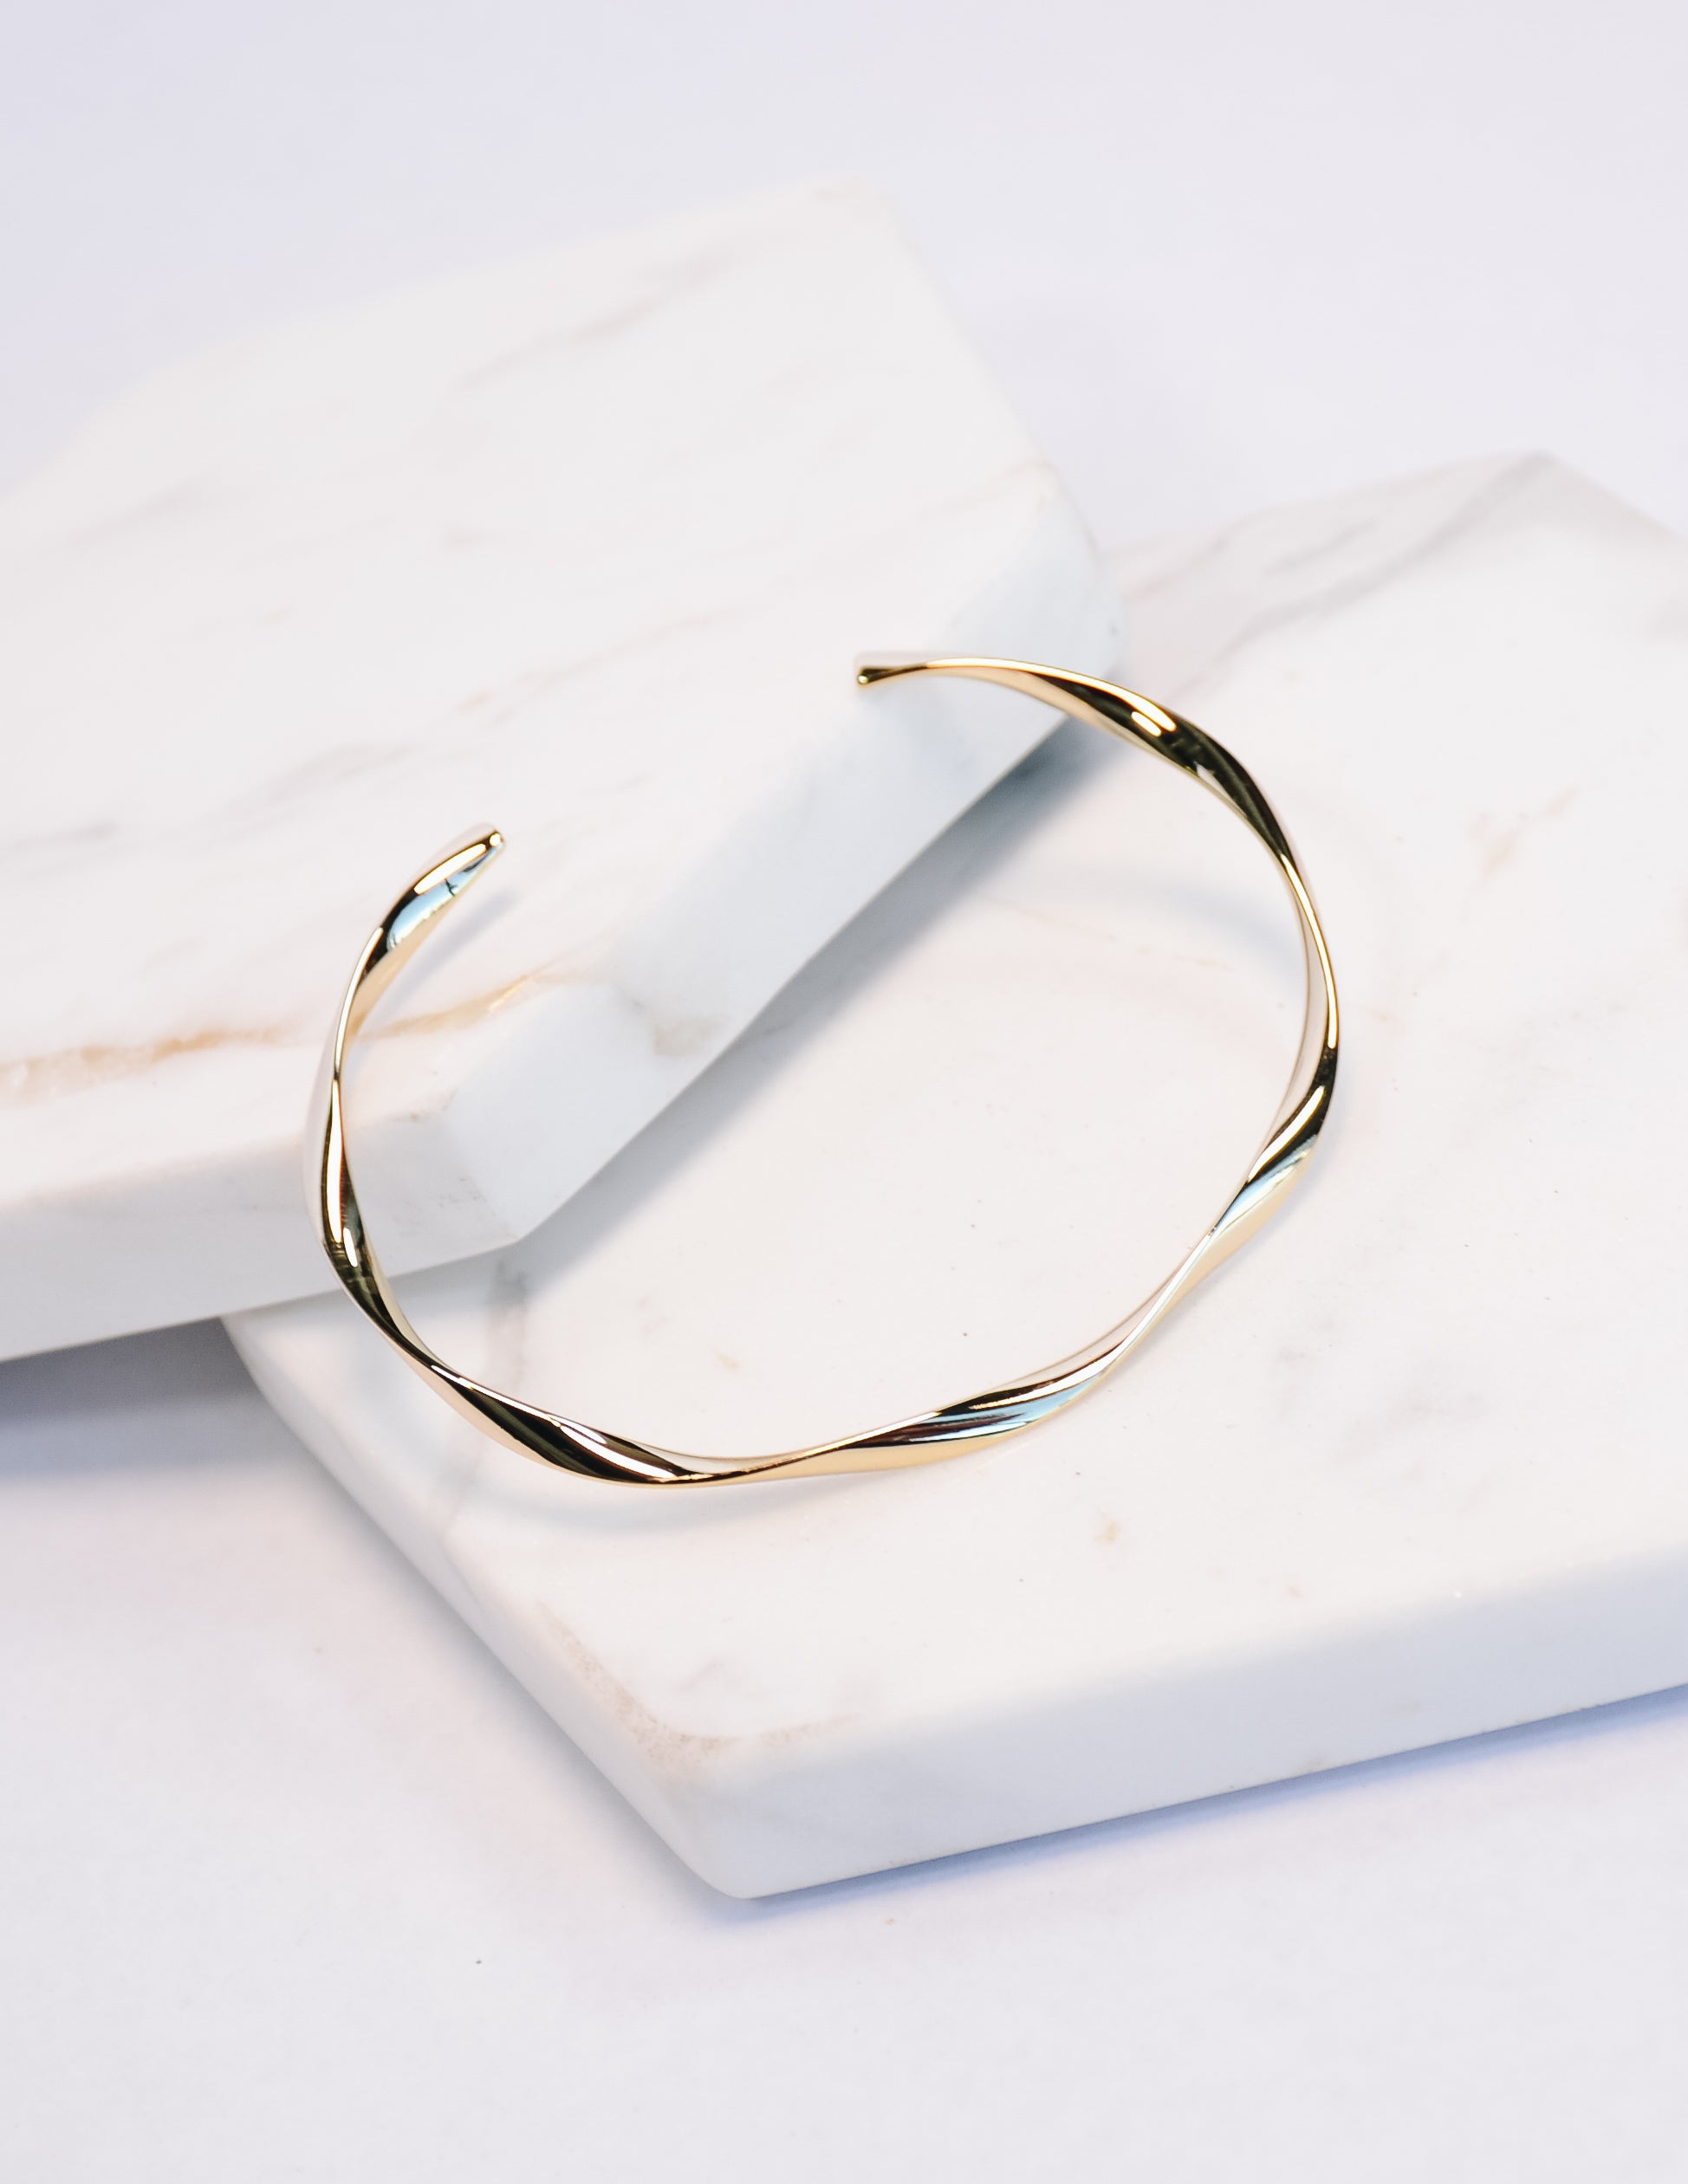 Lula gold bracelet on white stone background